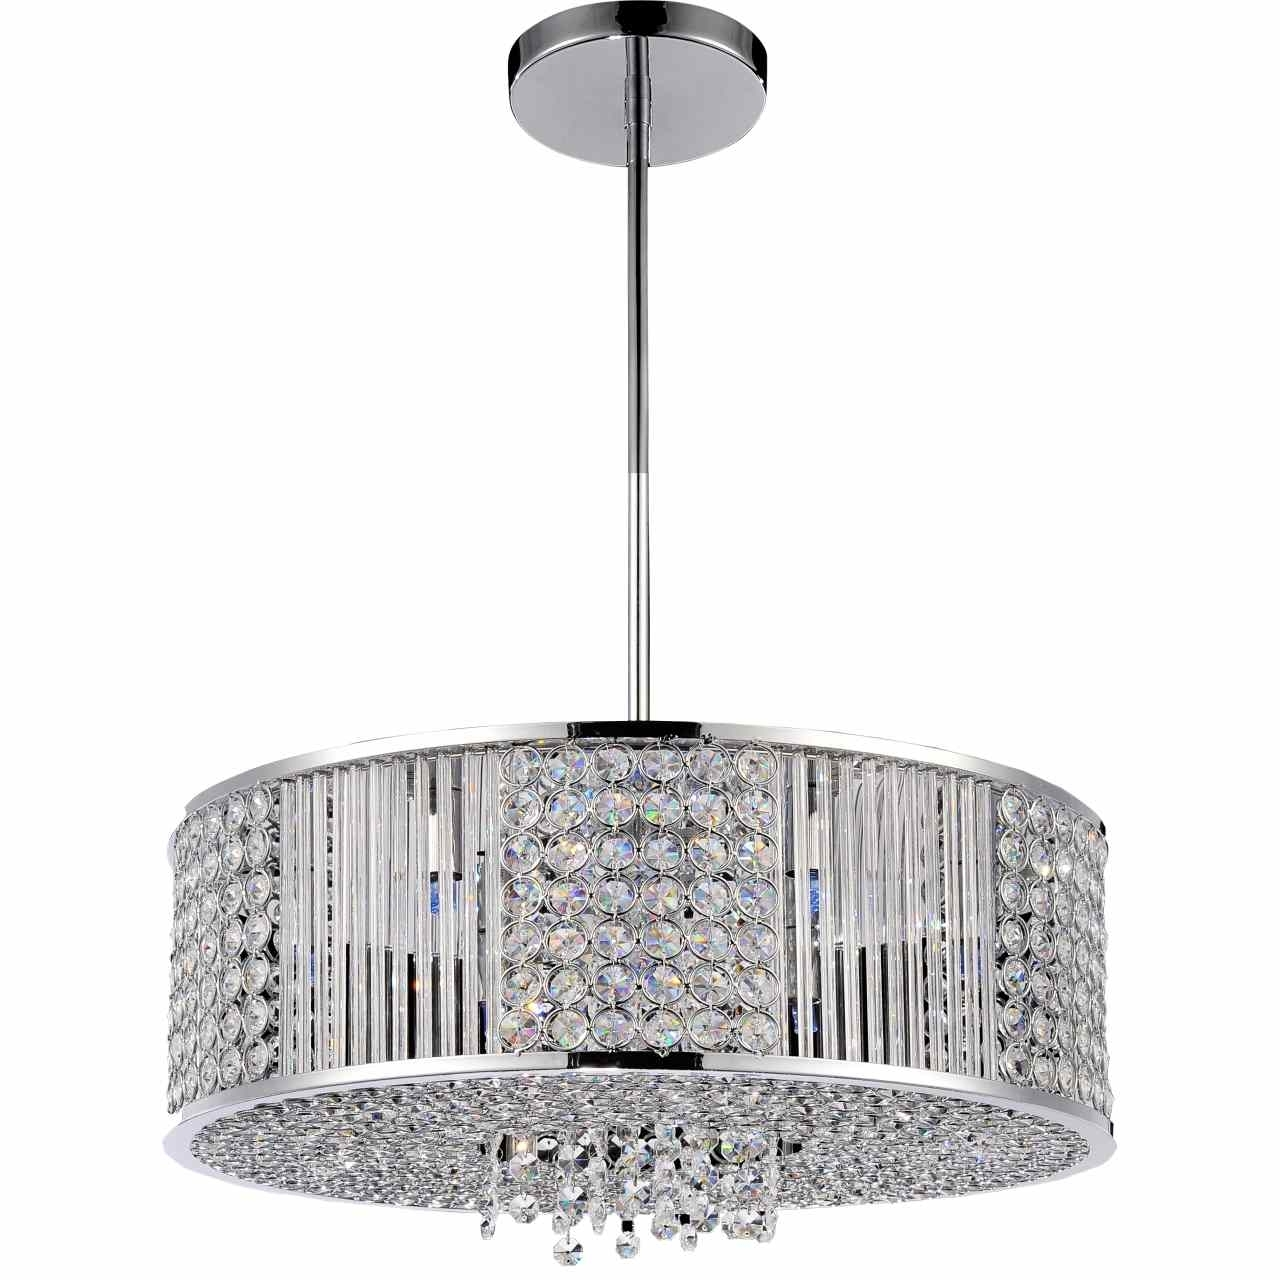 """Newest Brizzo Lighting Stores. 22"""" Cristallo Modern Crystal Round Pendant throughout Crystal And Chrome Chandeliers"""